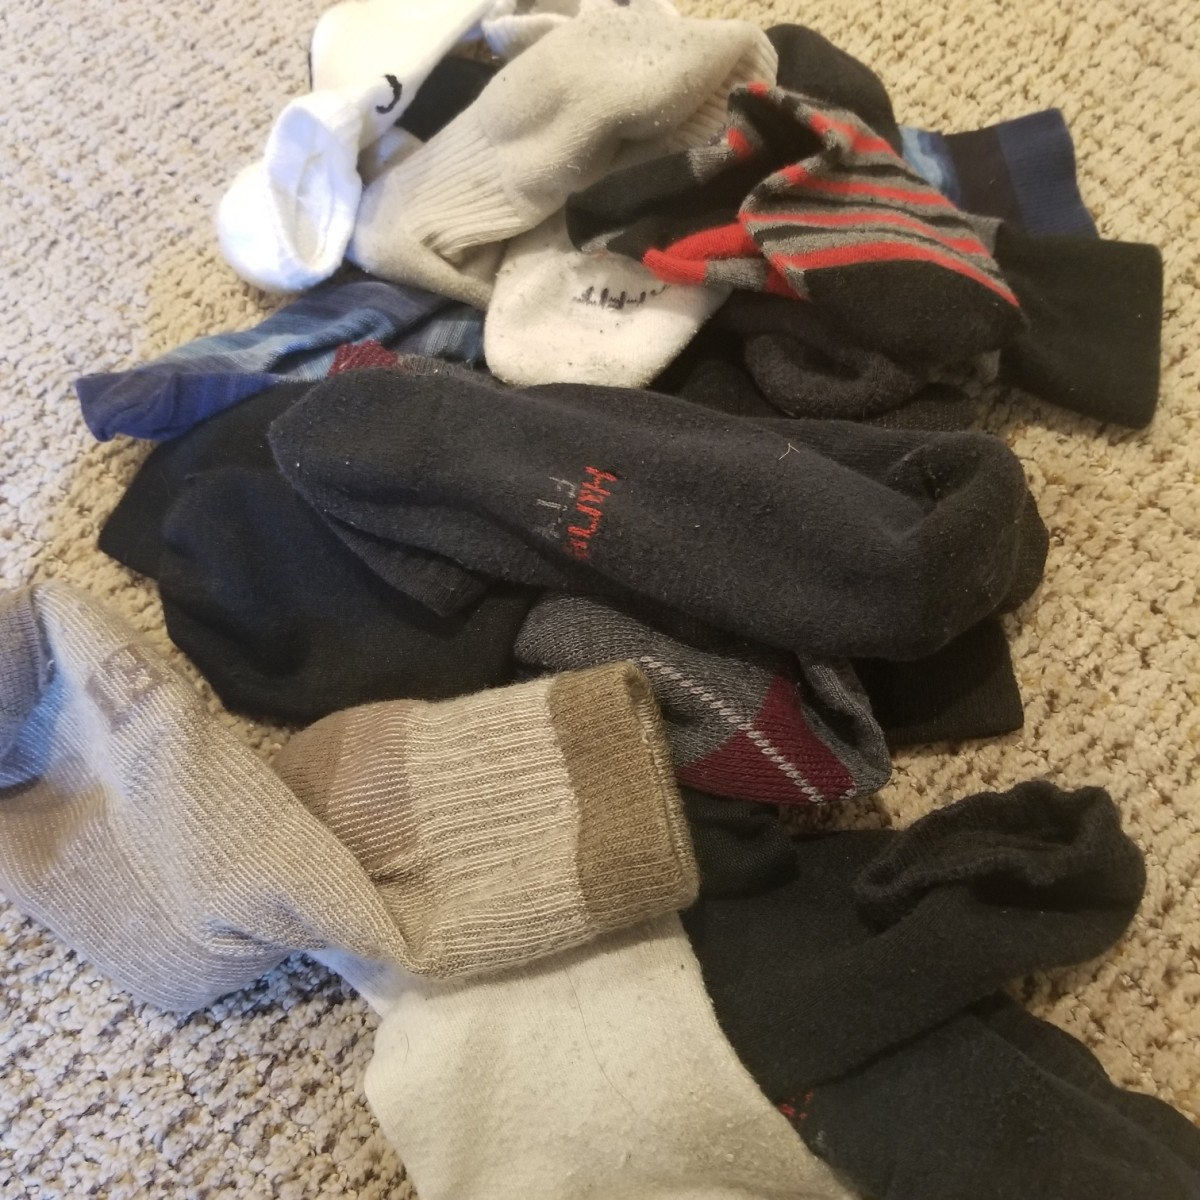 Odd Socks: Where They Go, Matching Them, Using Them and More